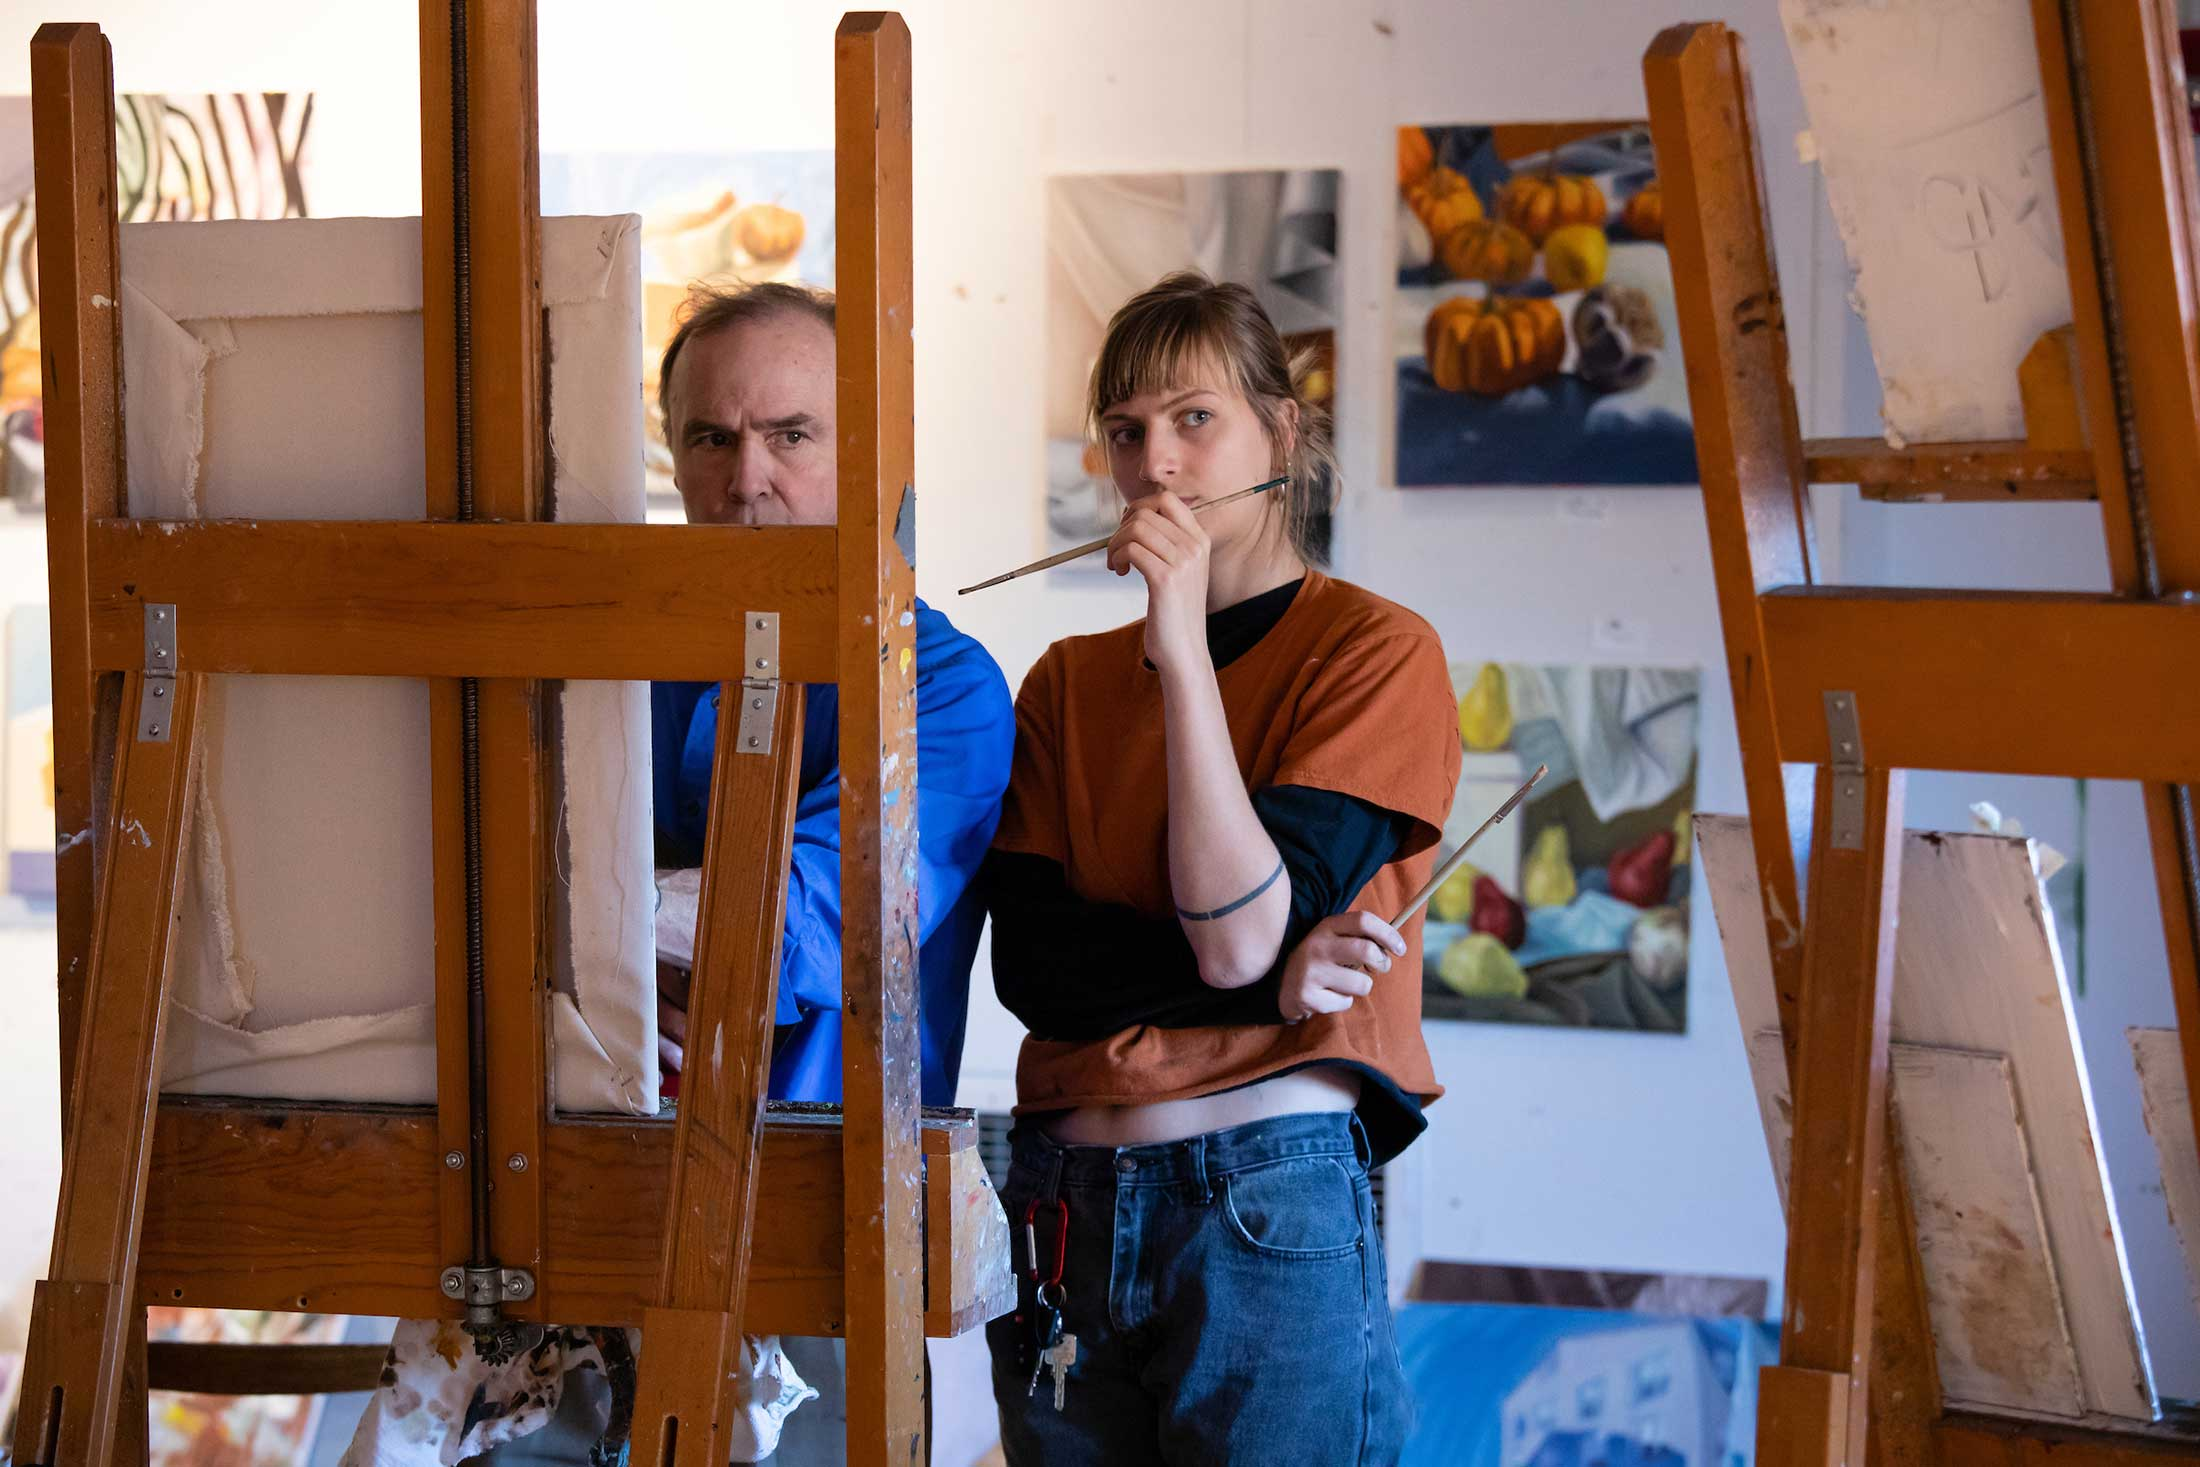 Two people stand before an easel contemplating a painting in progress